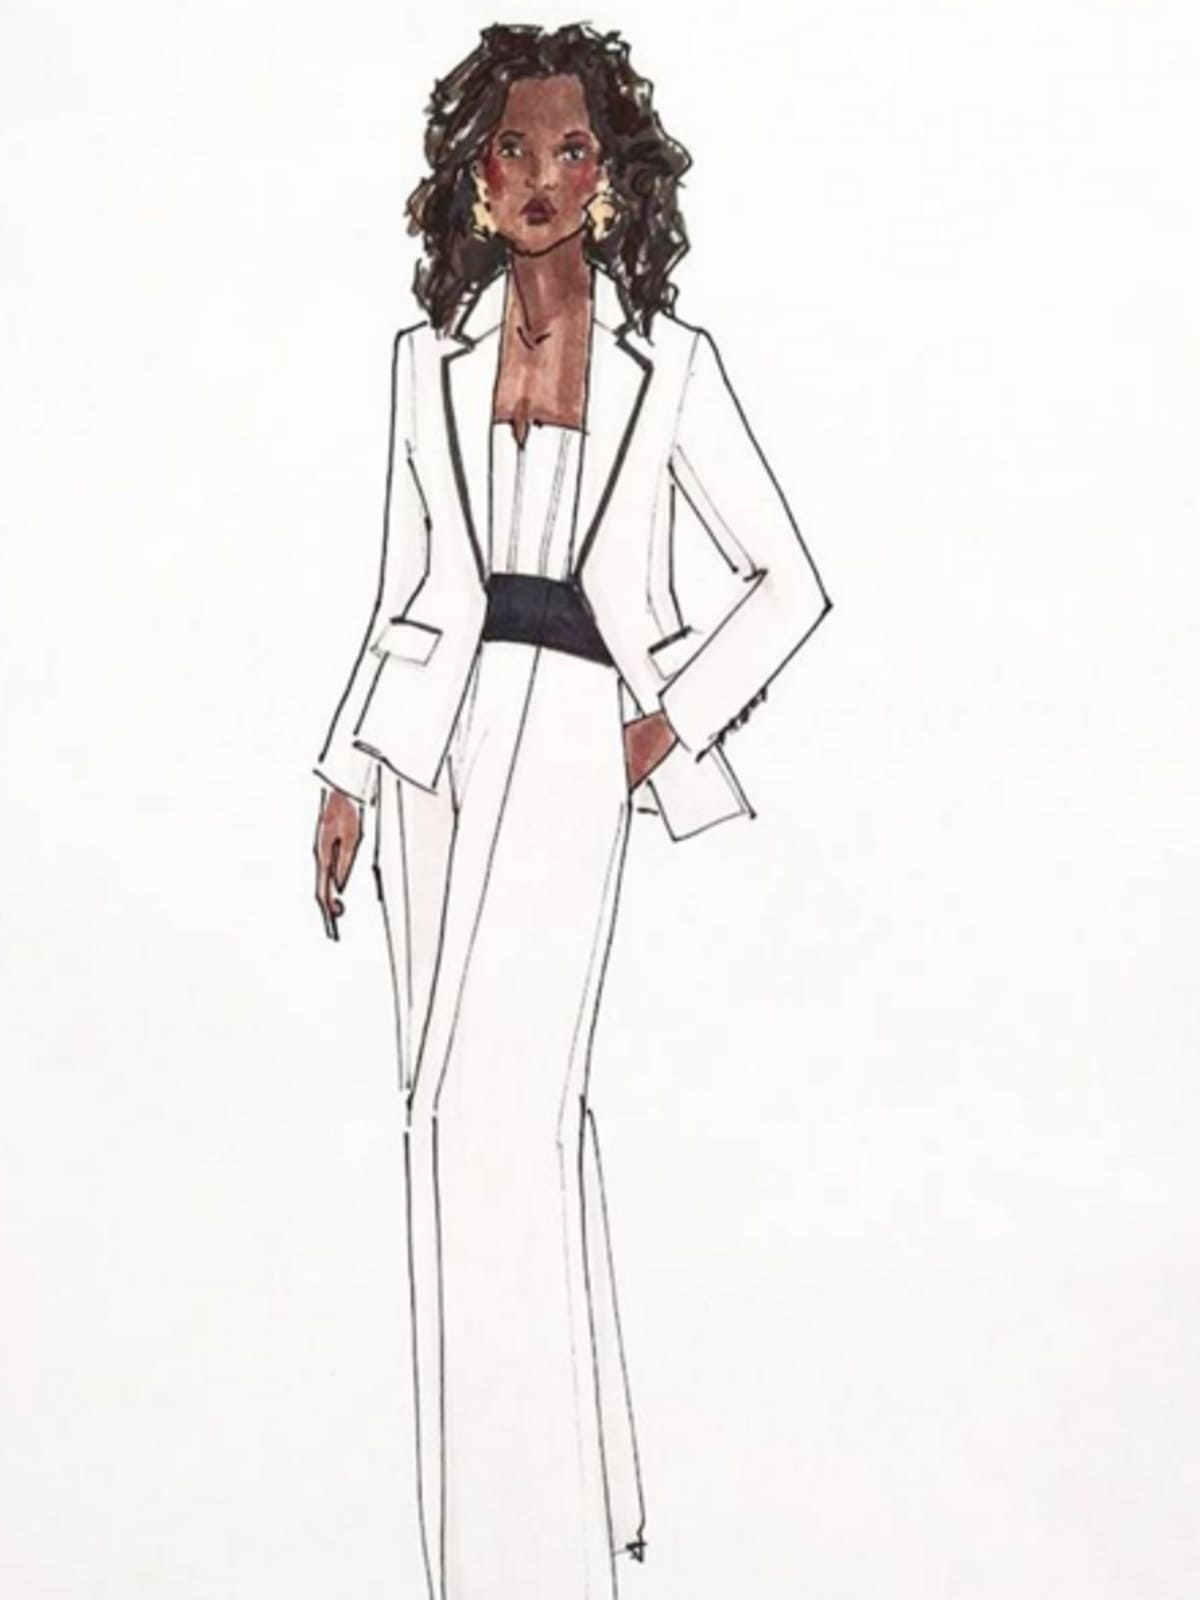 Sketch of Oprah Winfrey pantsuit designed by Elizabeth Kennedy